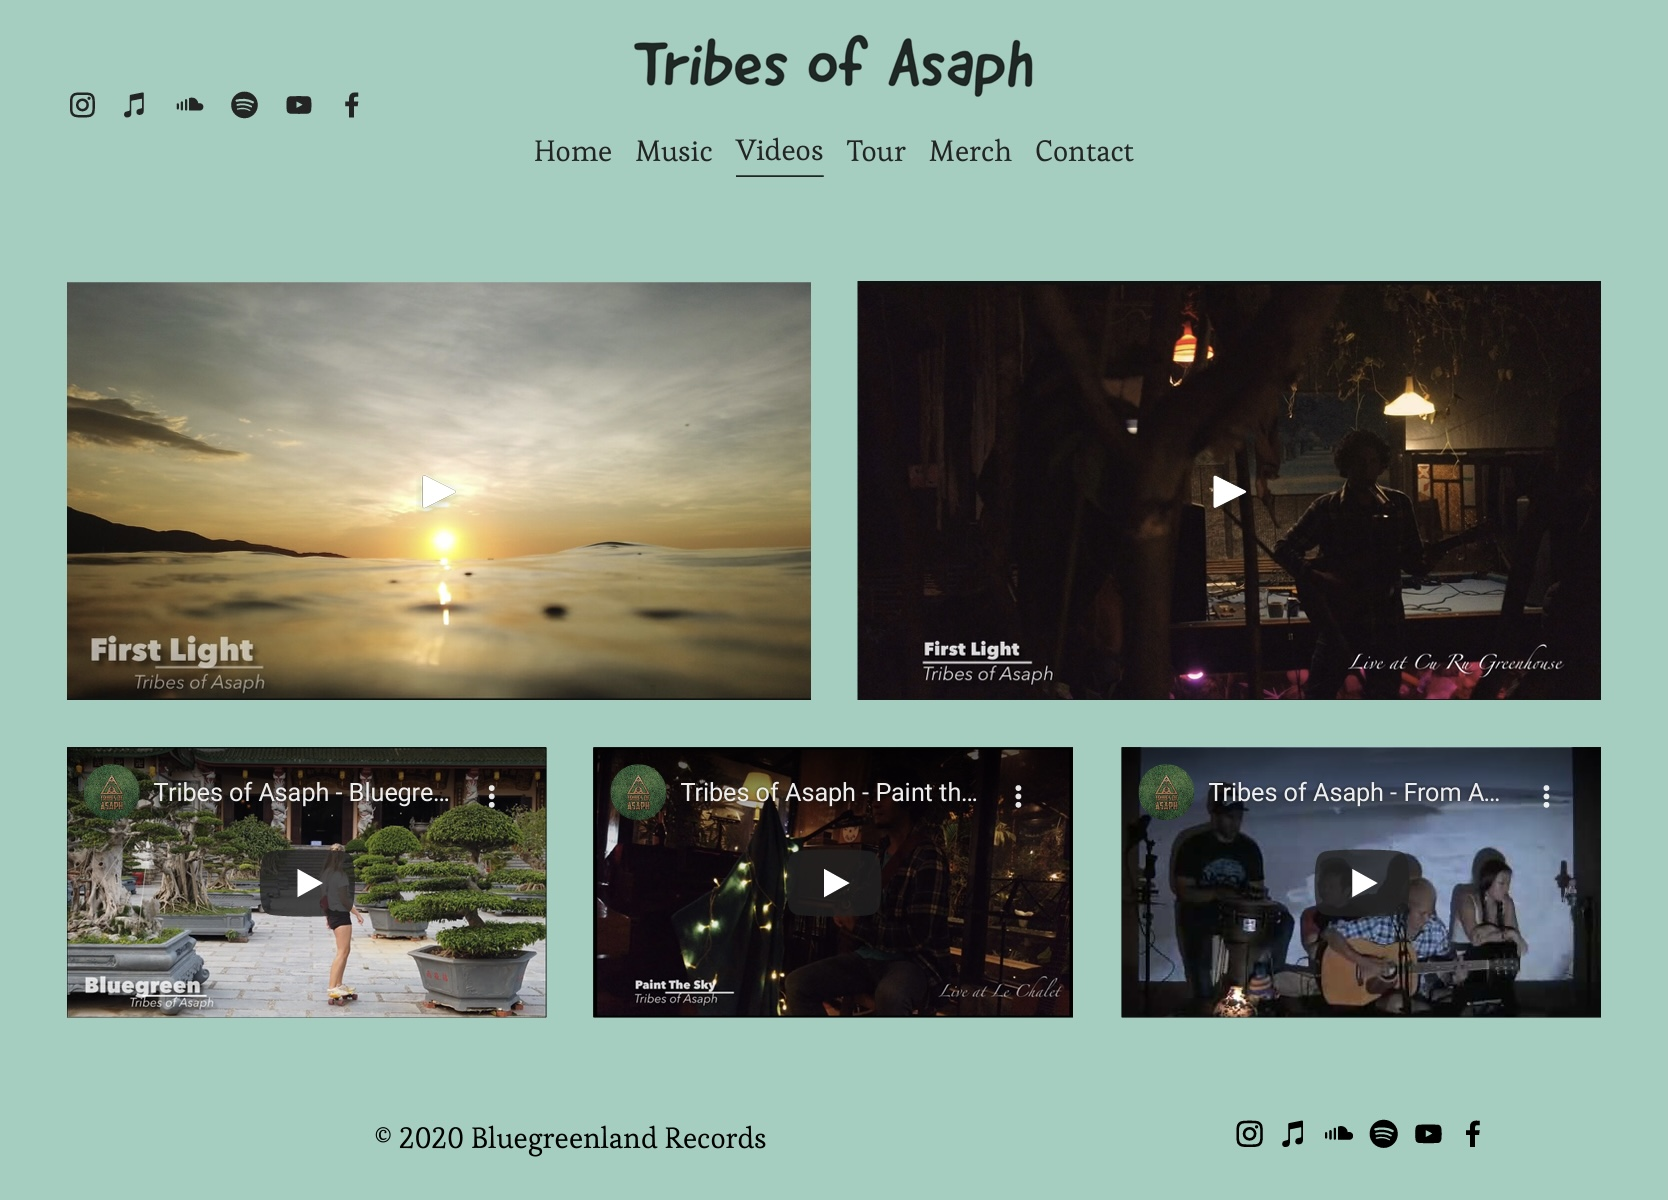 Tribes of Asaph - Videos